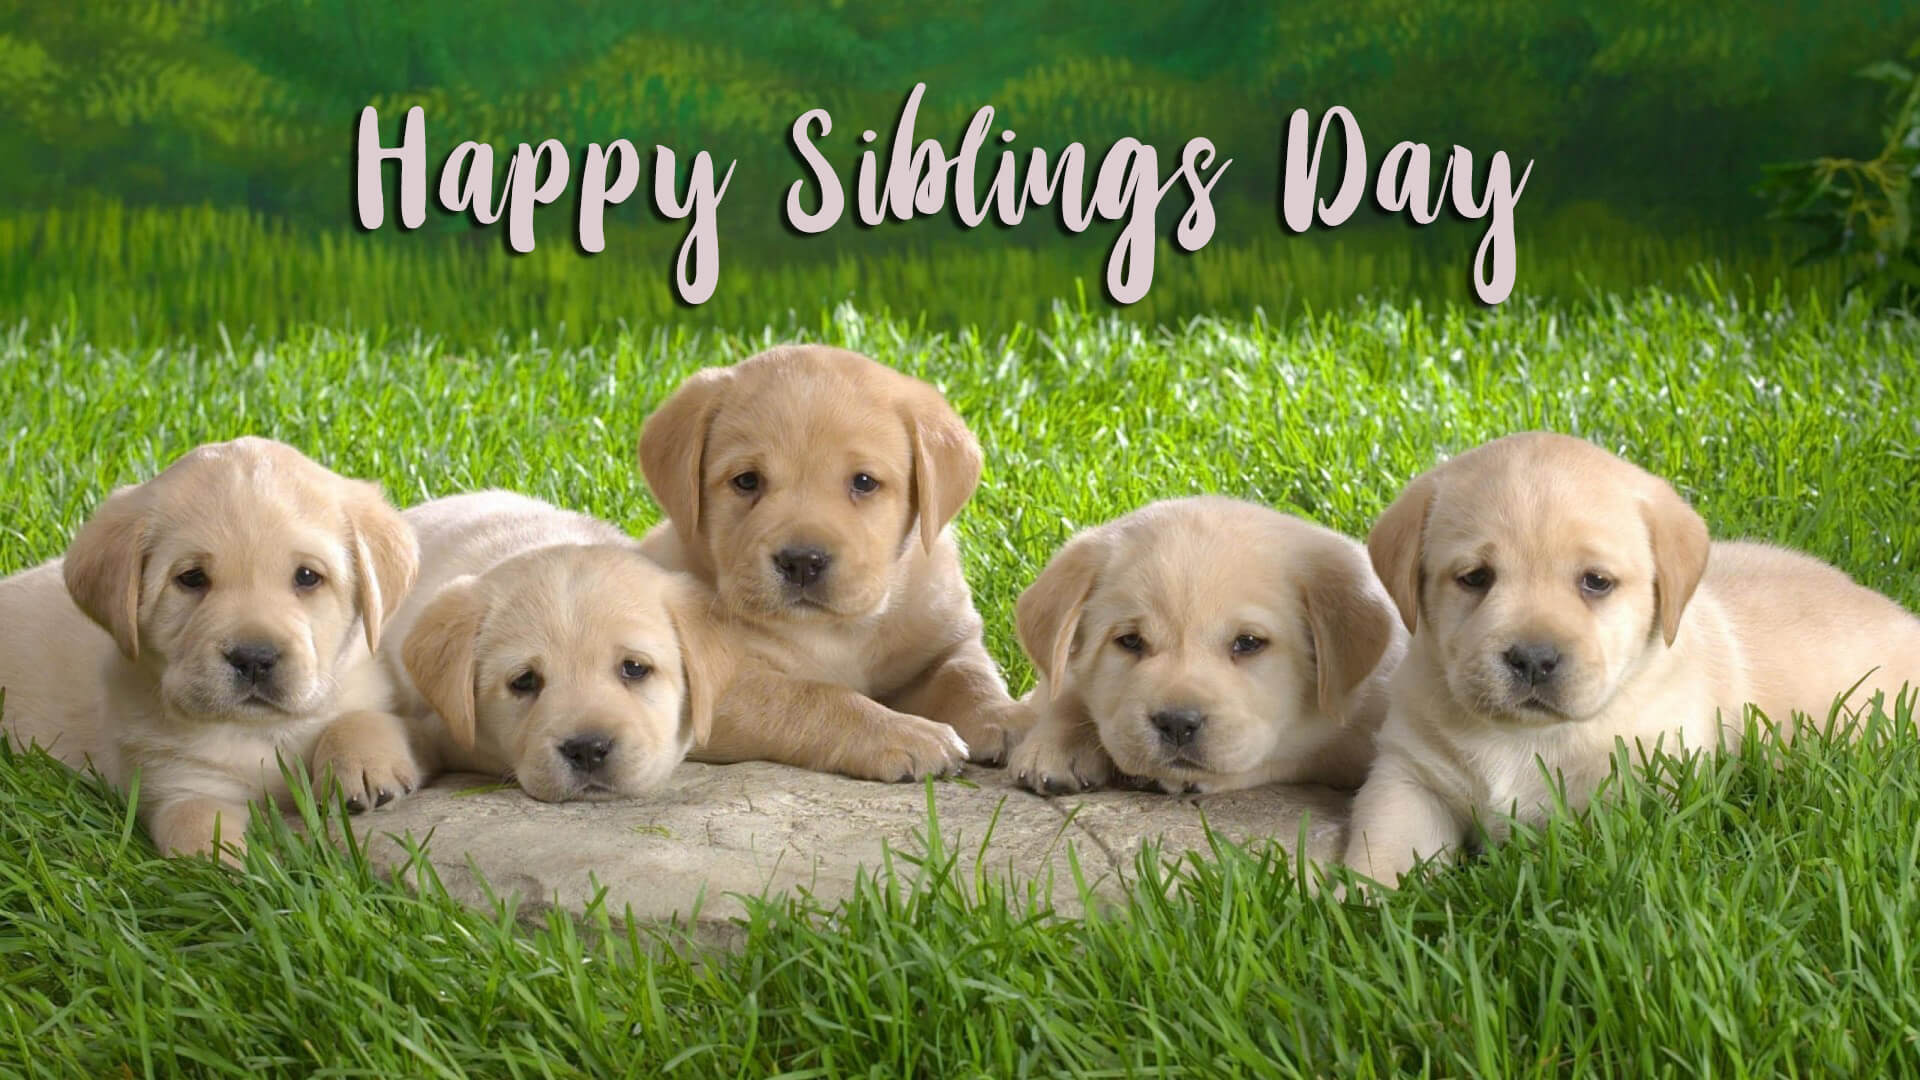 Happy National Siblings Day Five Puppy Labrador Dog Hd Wallpaper